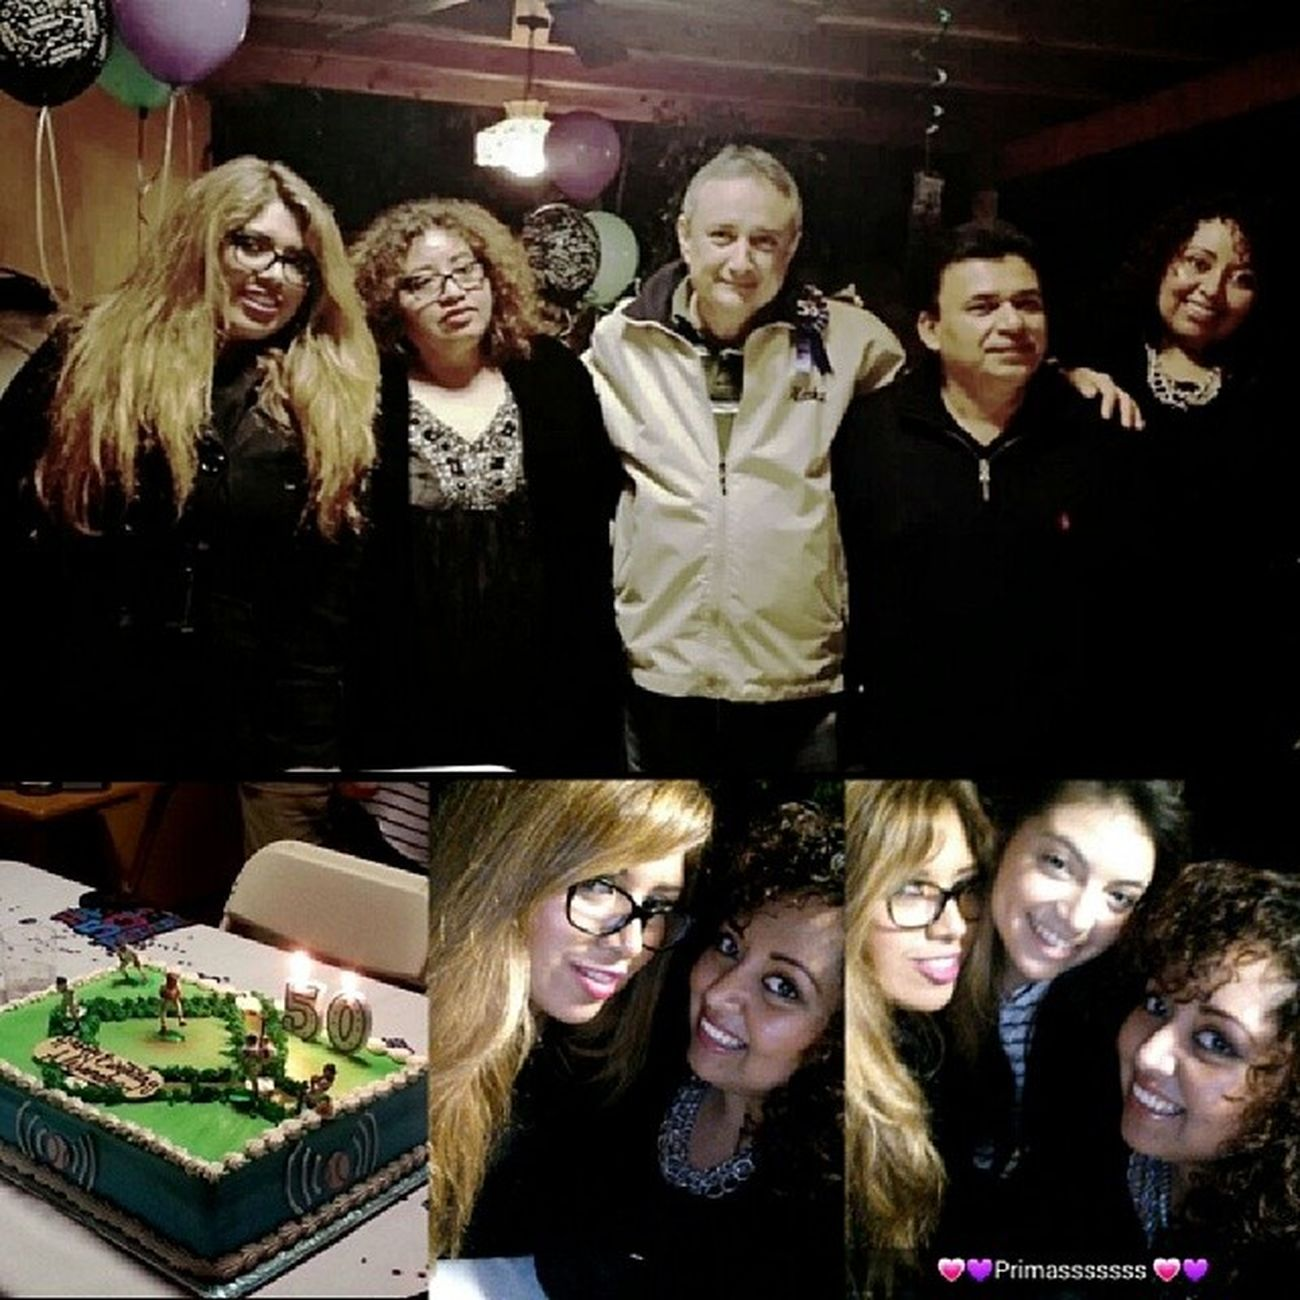 Yesterday surprise party for my tios 50th birthday! Latepost Familynight LoveThem  HappyBirthdayTio !